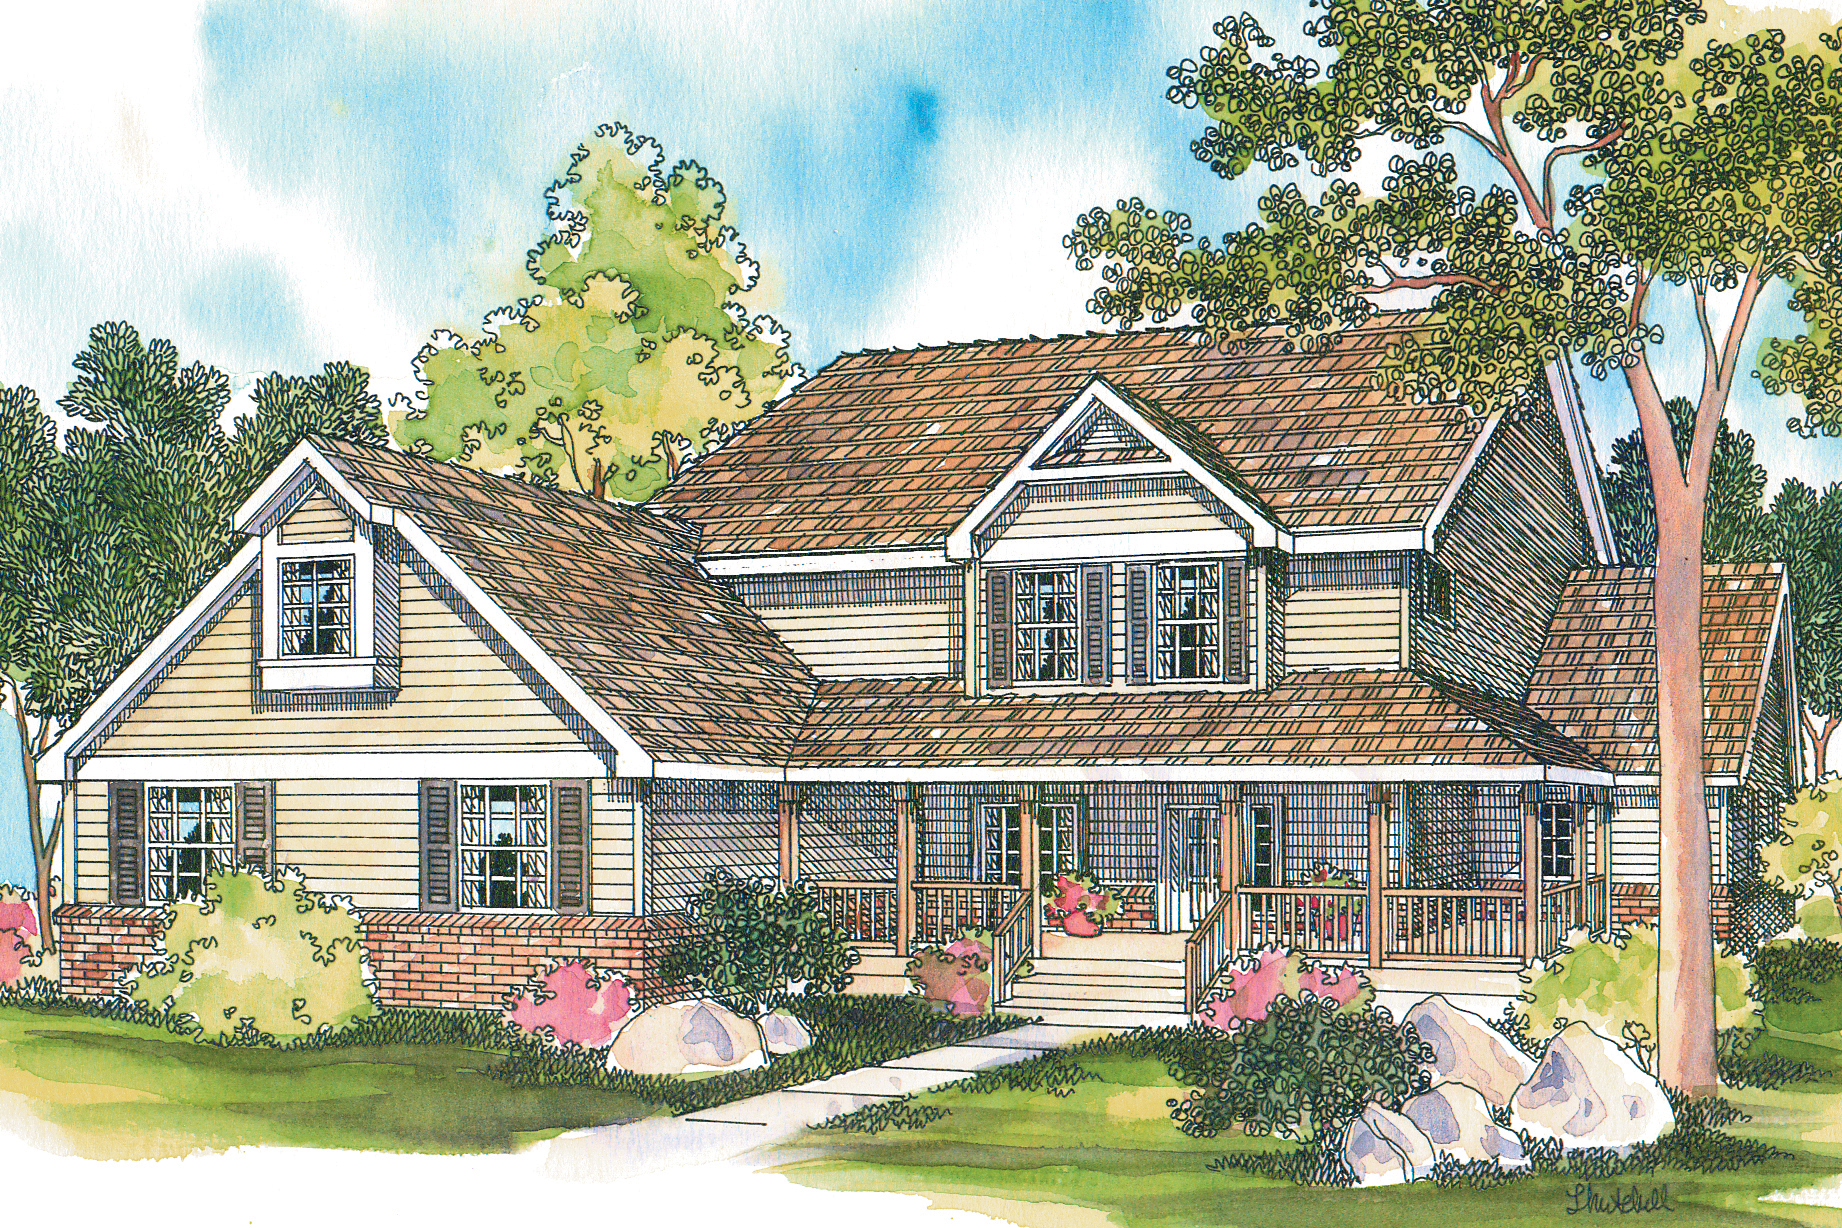 Featured House Plan of the Week, Country House Plan, Home Plan, Clayton 10-292